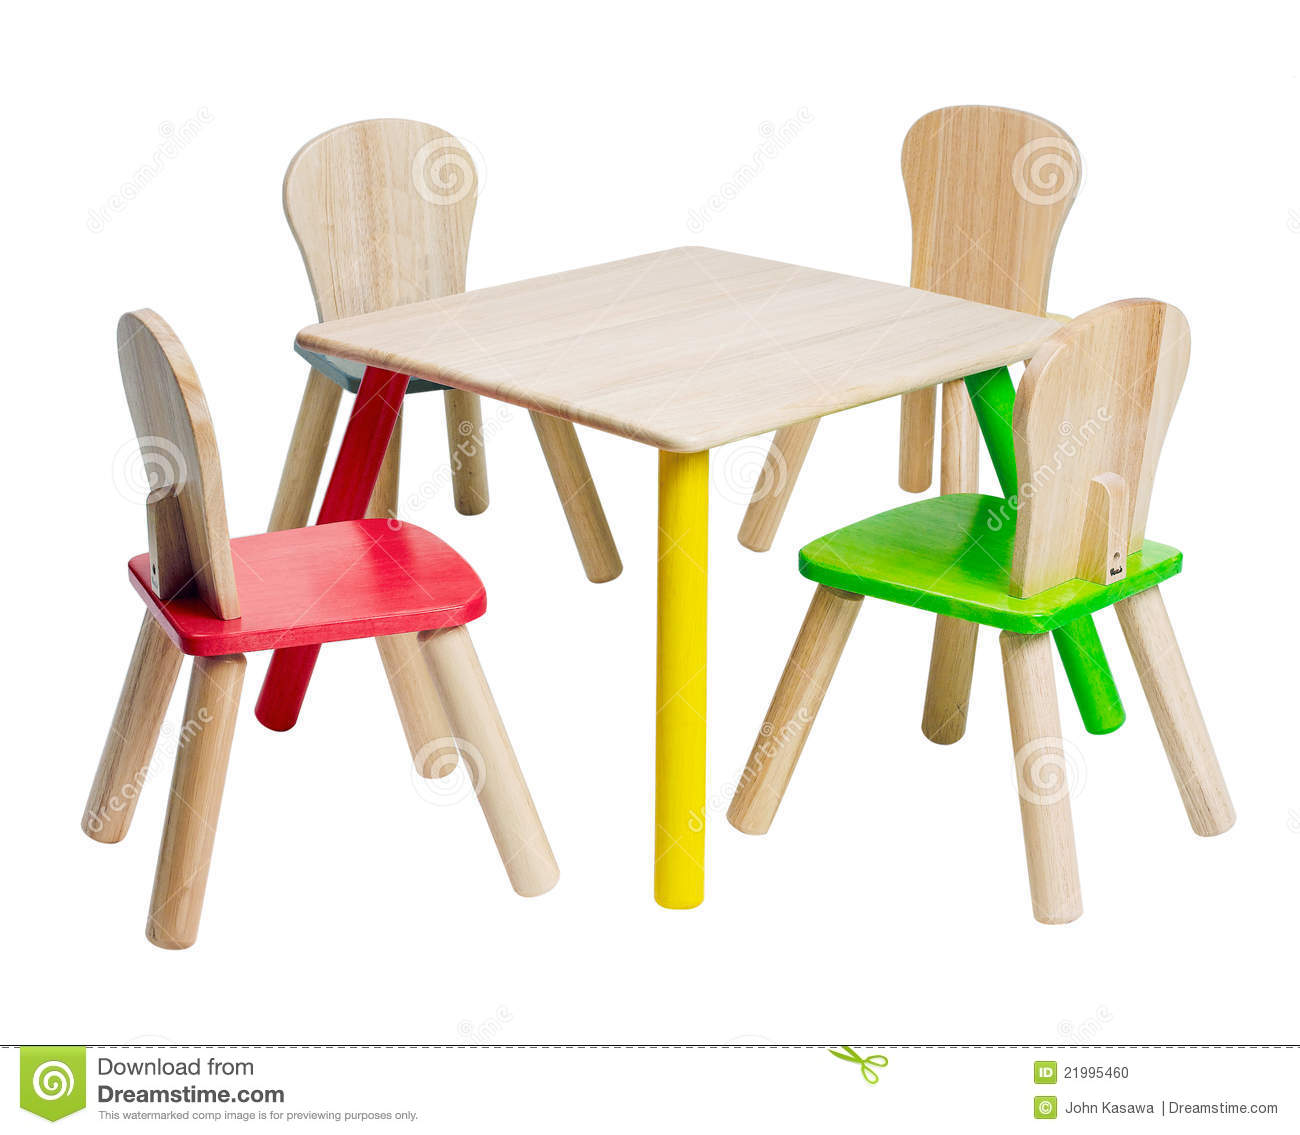 Wooden Table And Chairs Toys For Kid Stock Photo Image Of Childhood Children 21995460